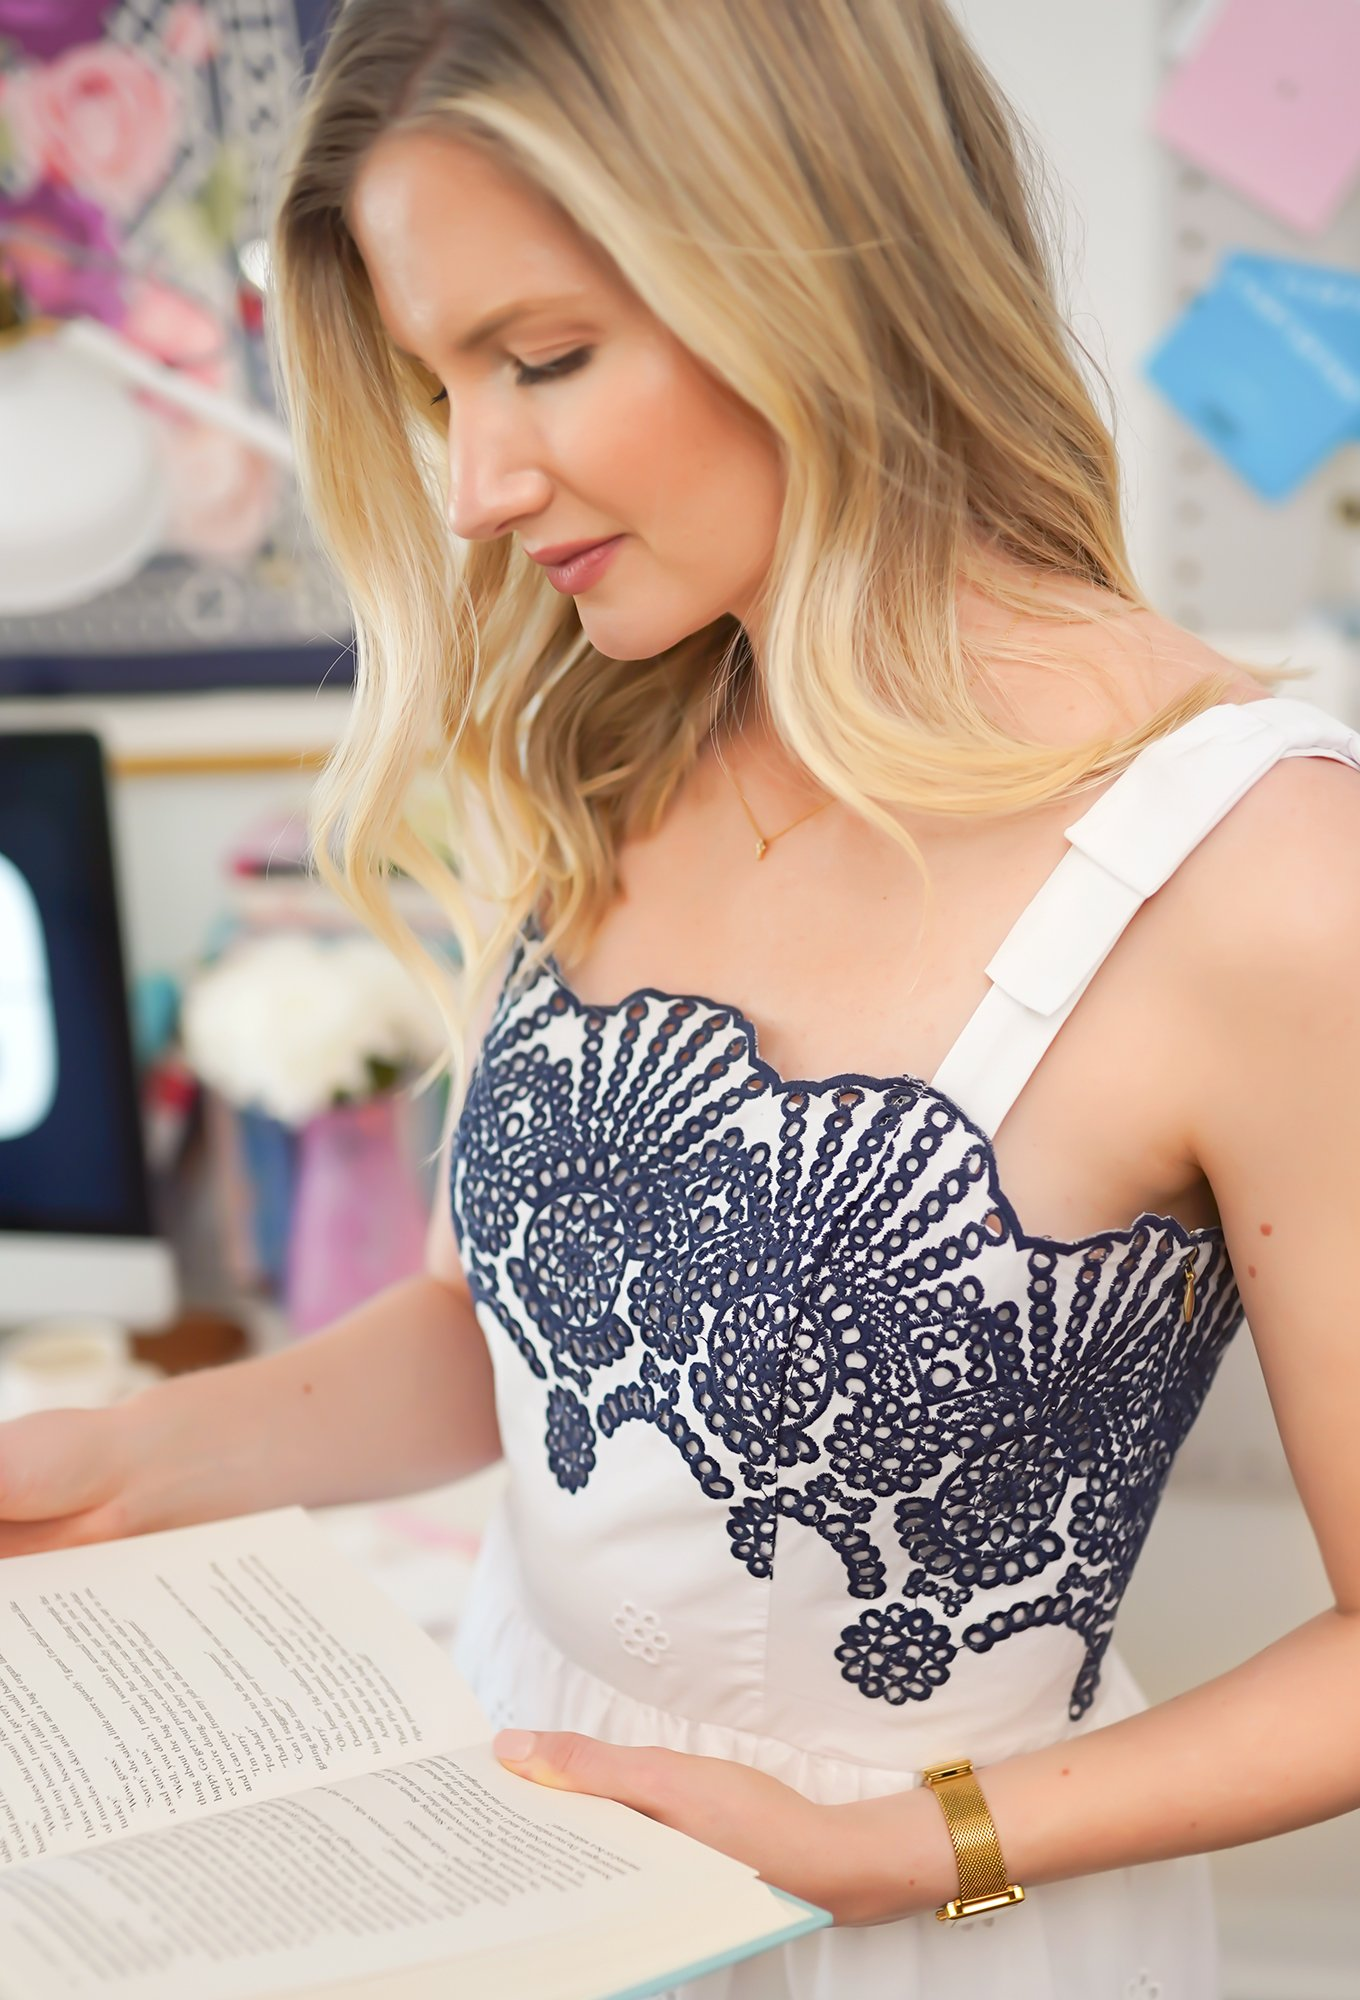 Ashley Brooke reading in blue and white embroidered dress